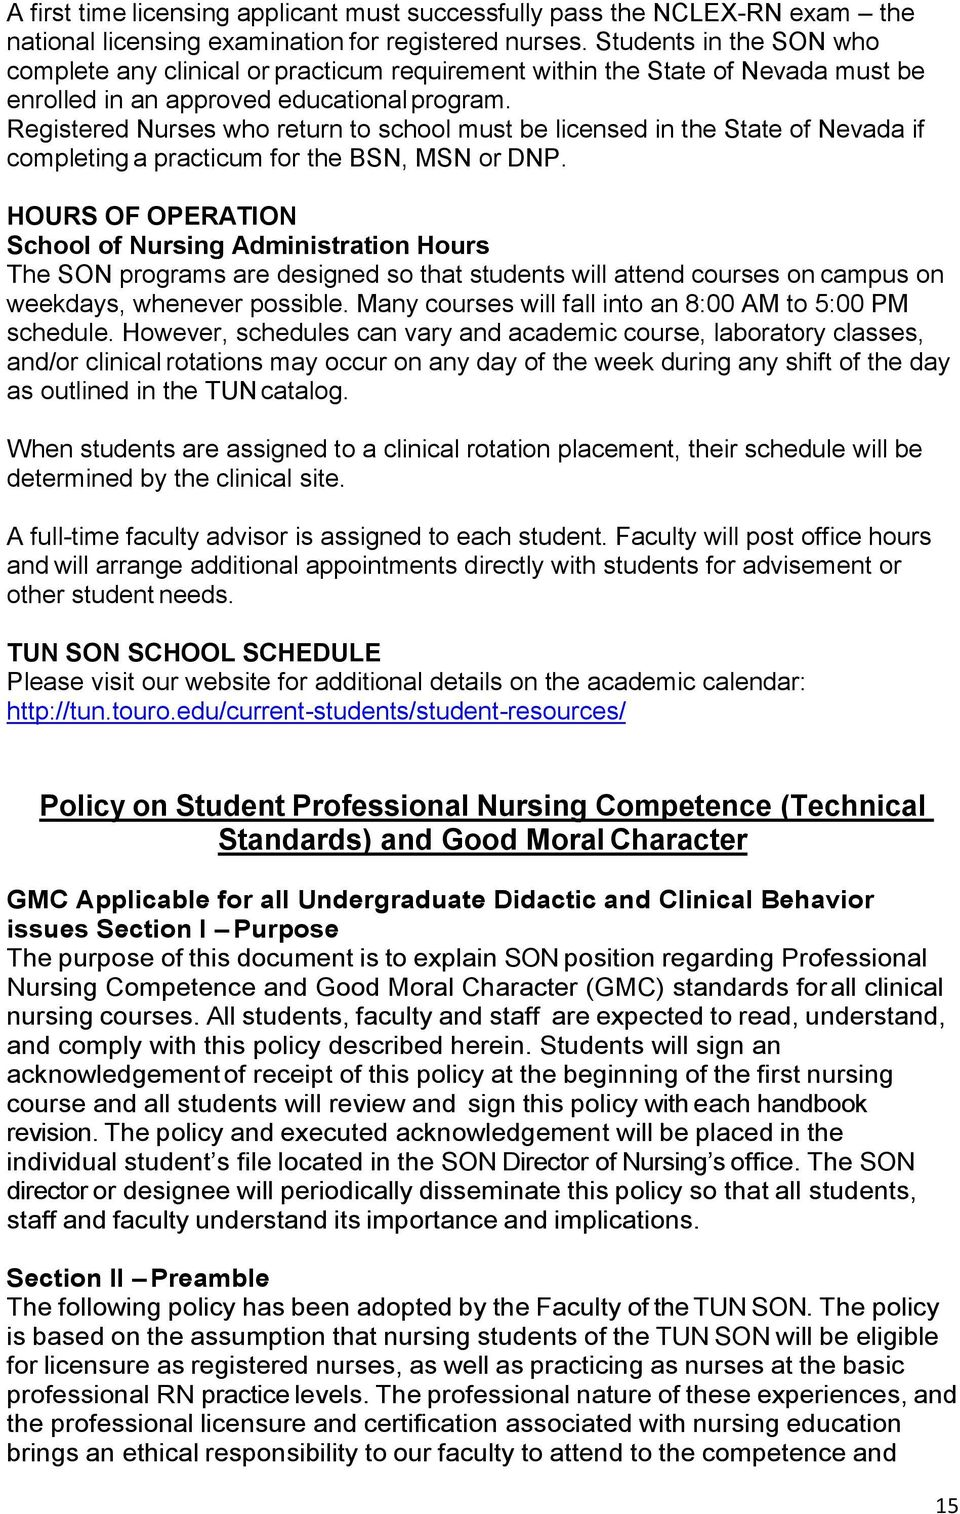 Registered Nurses who return to school must be licensed in the State of Nevada if completing a practicum for the BSN, MSN or DNP.